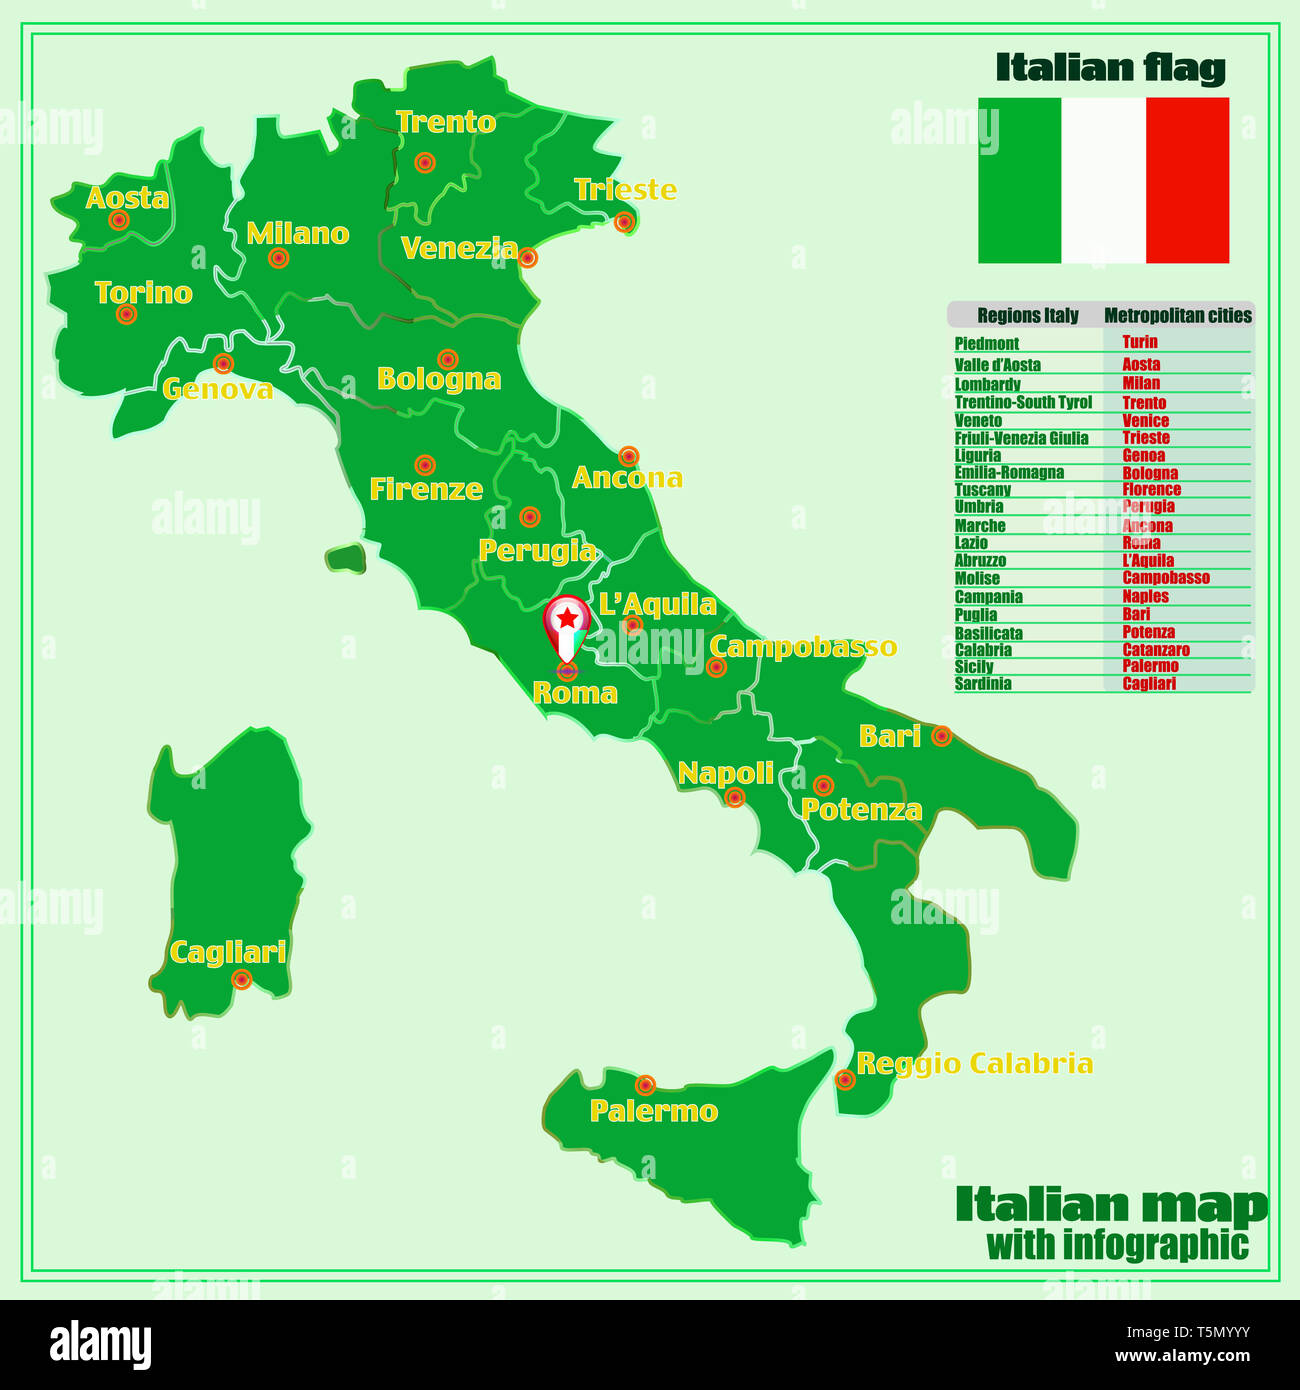 Regions Of Italy Map With Cities.Map Of Italy With Infographic Italy Map With Italian Major Cities